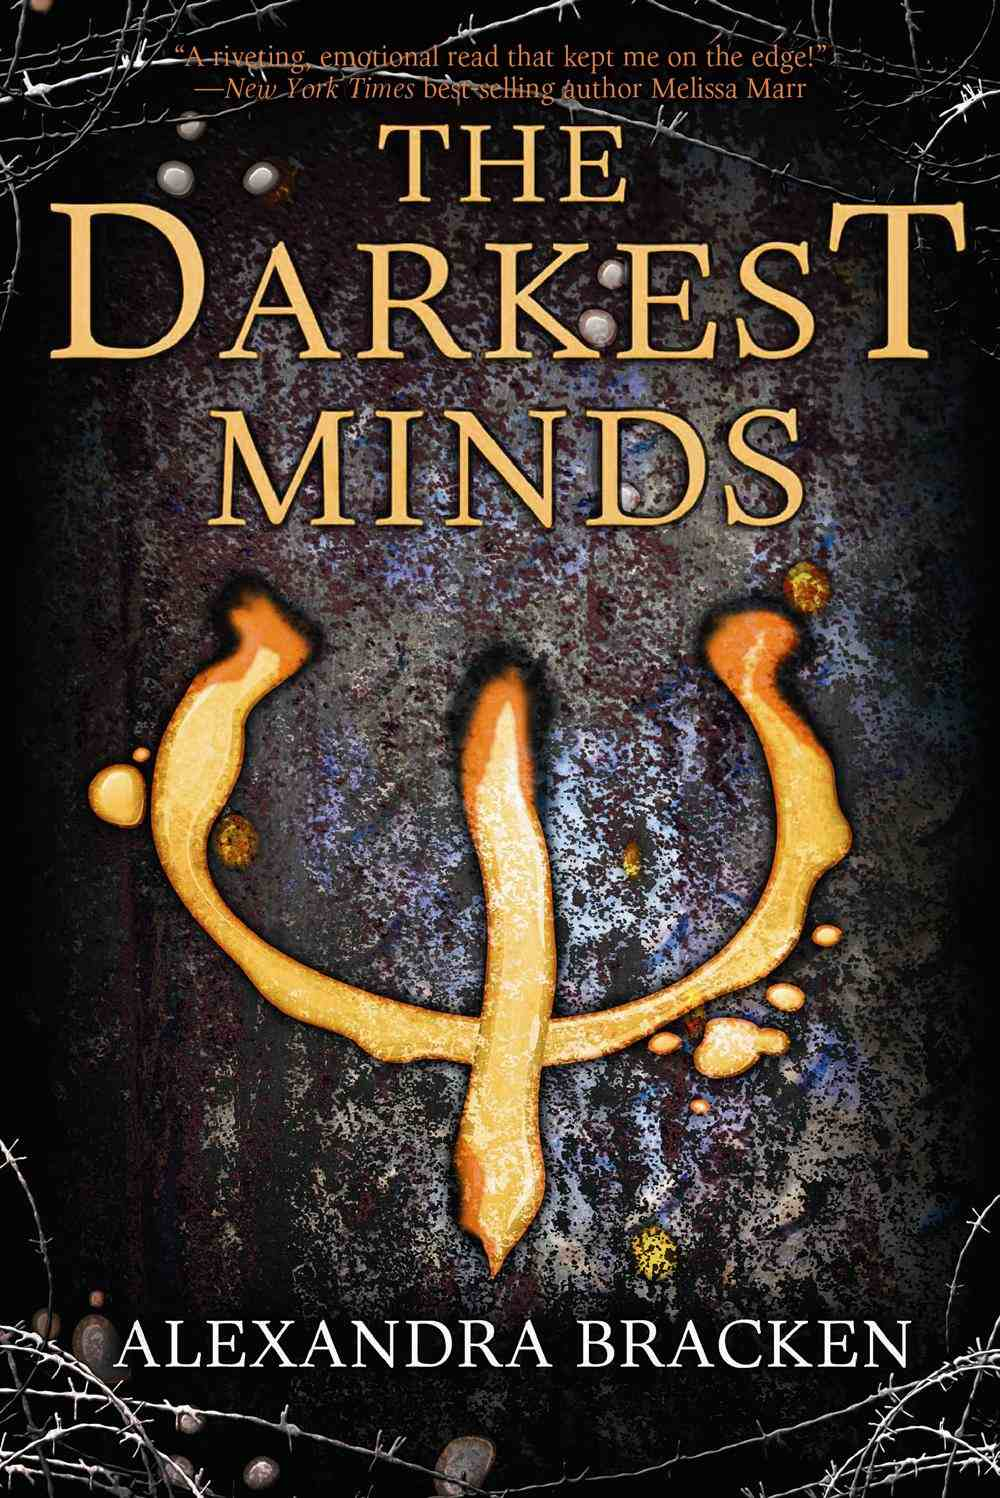 The Darkest Minds by Alexandra Bracken  Amazo n |  Goodreads